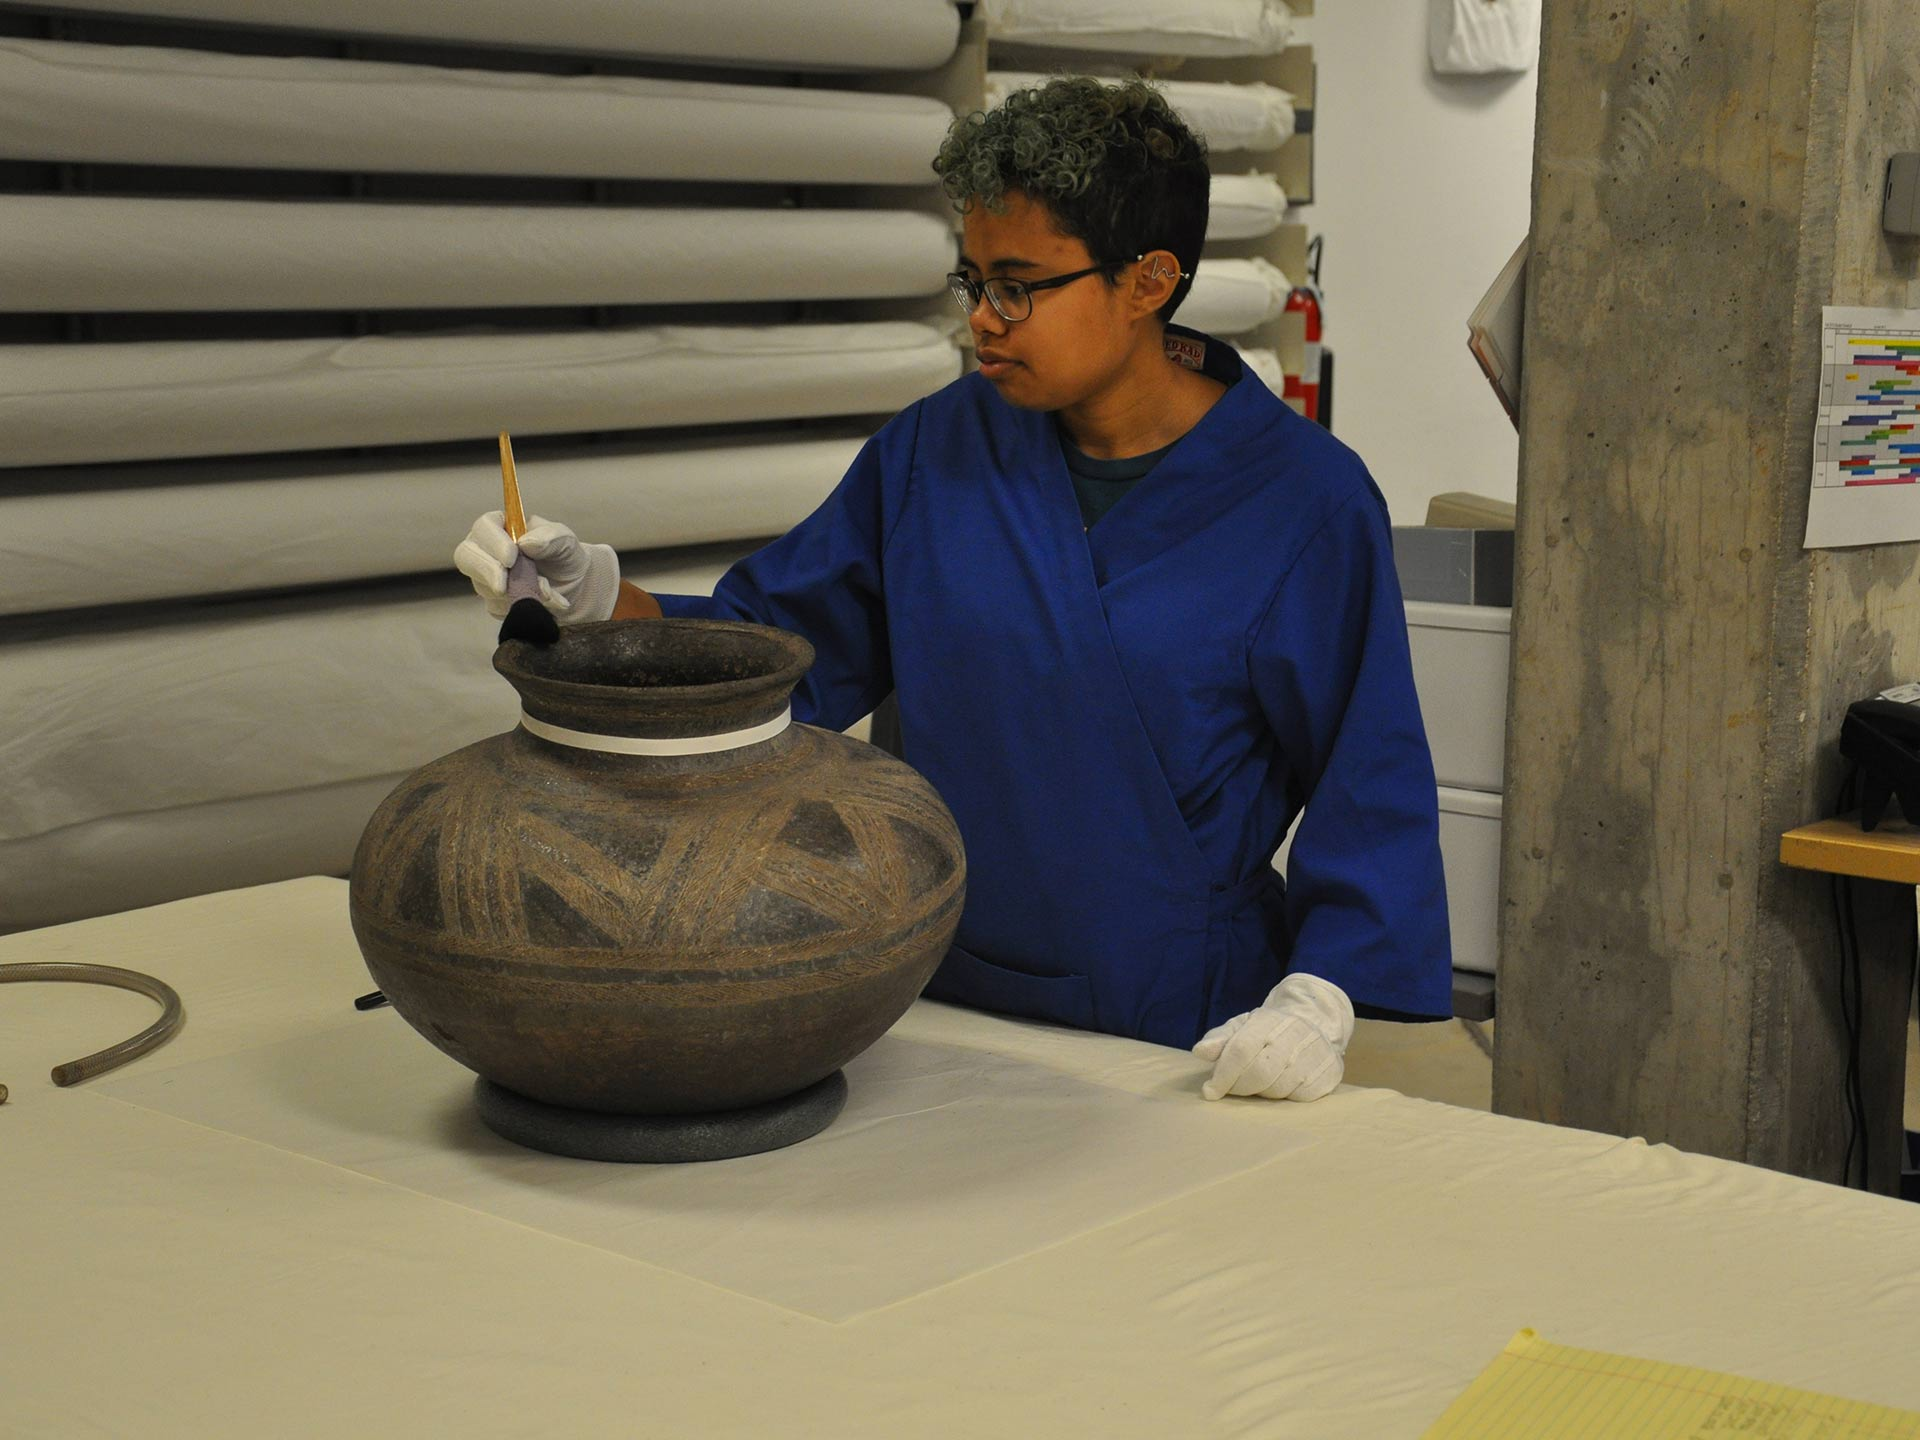 Collections Care: Cleaning African Ceramic Pots overview image